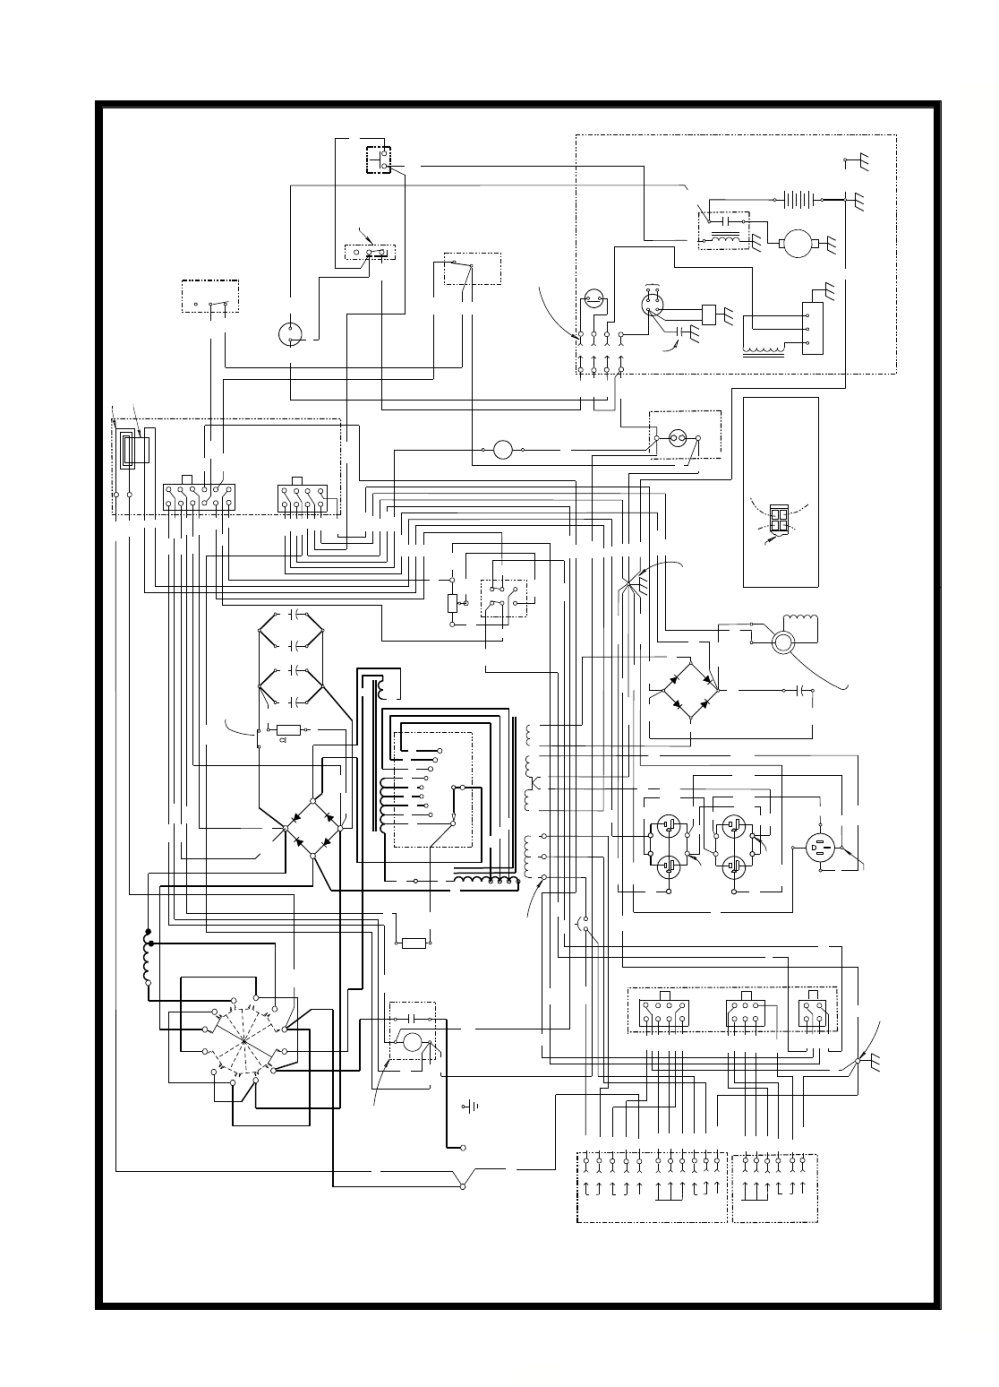 medium resolution of lincoln electric im511 d ranger 9 onan wiring diagram code 10378 10539